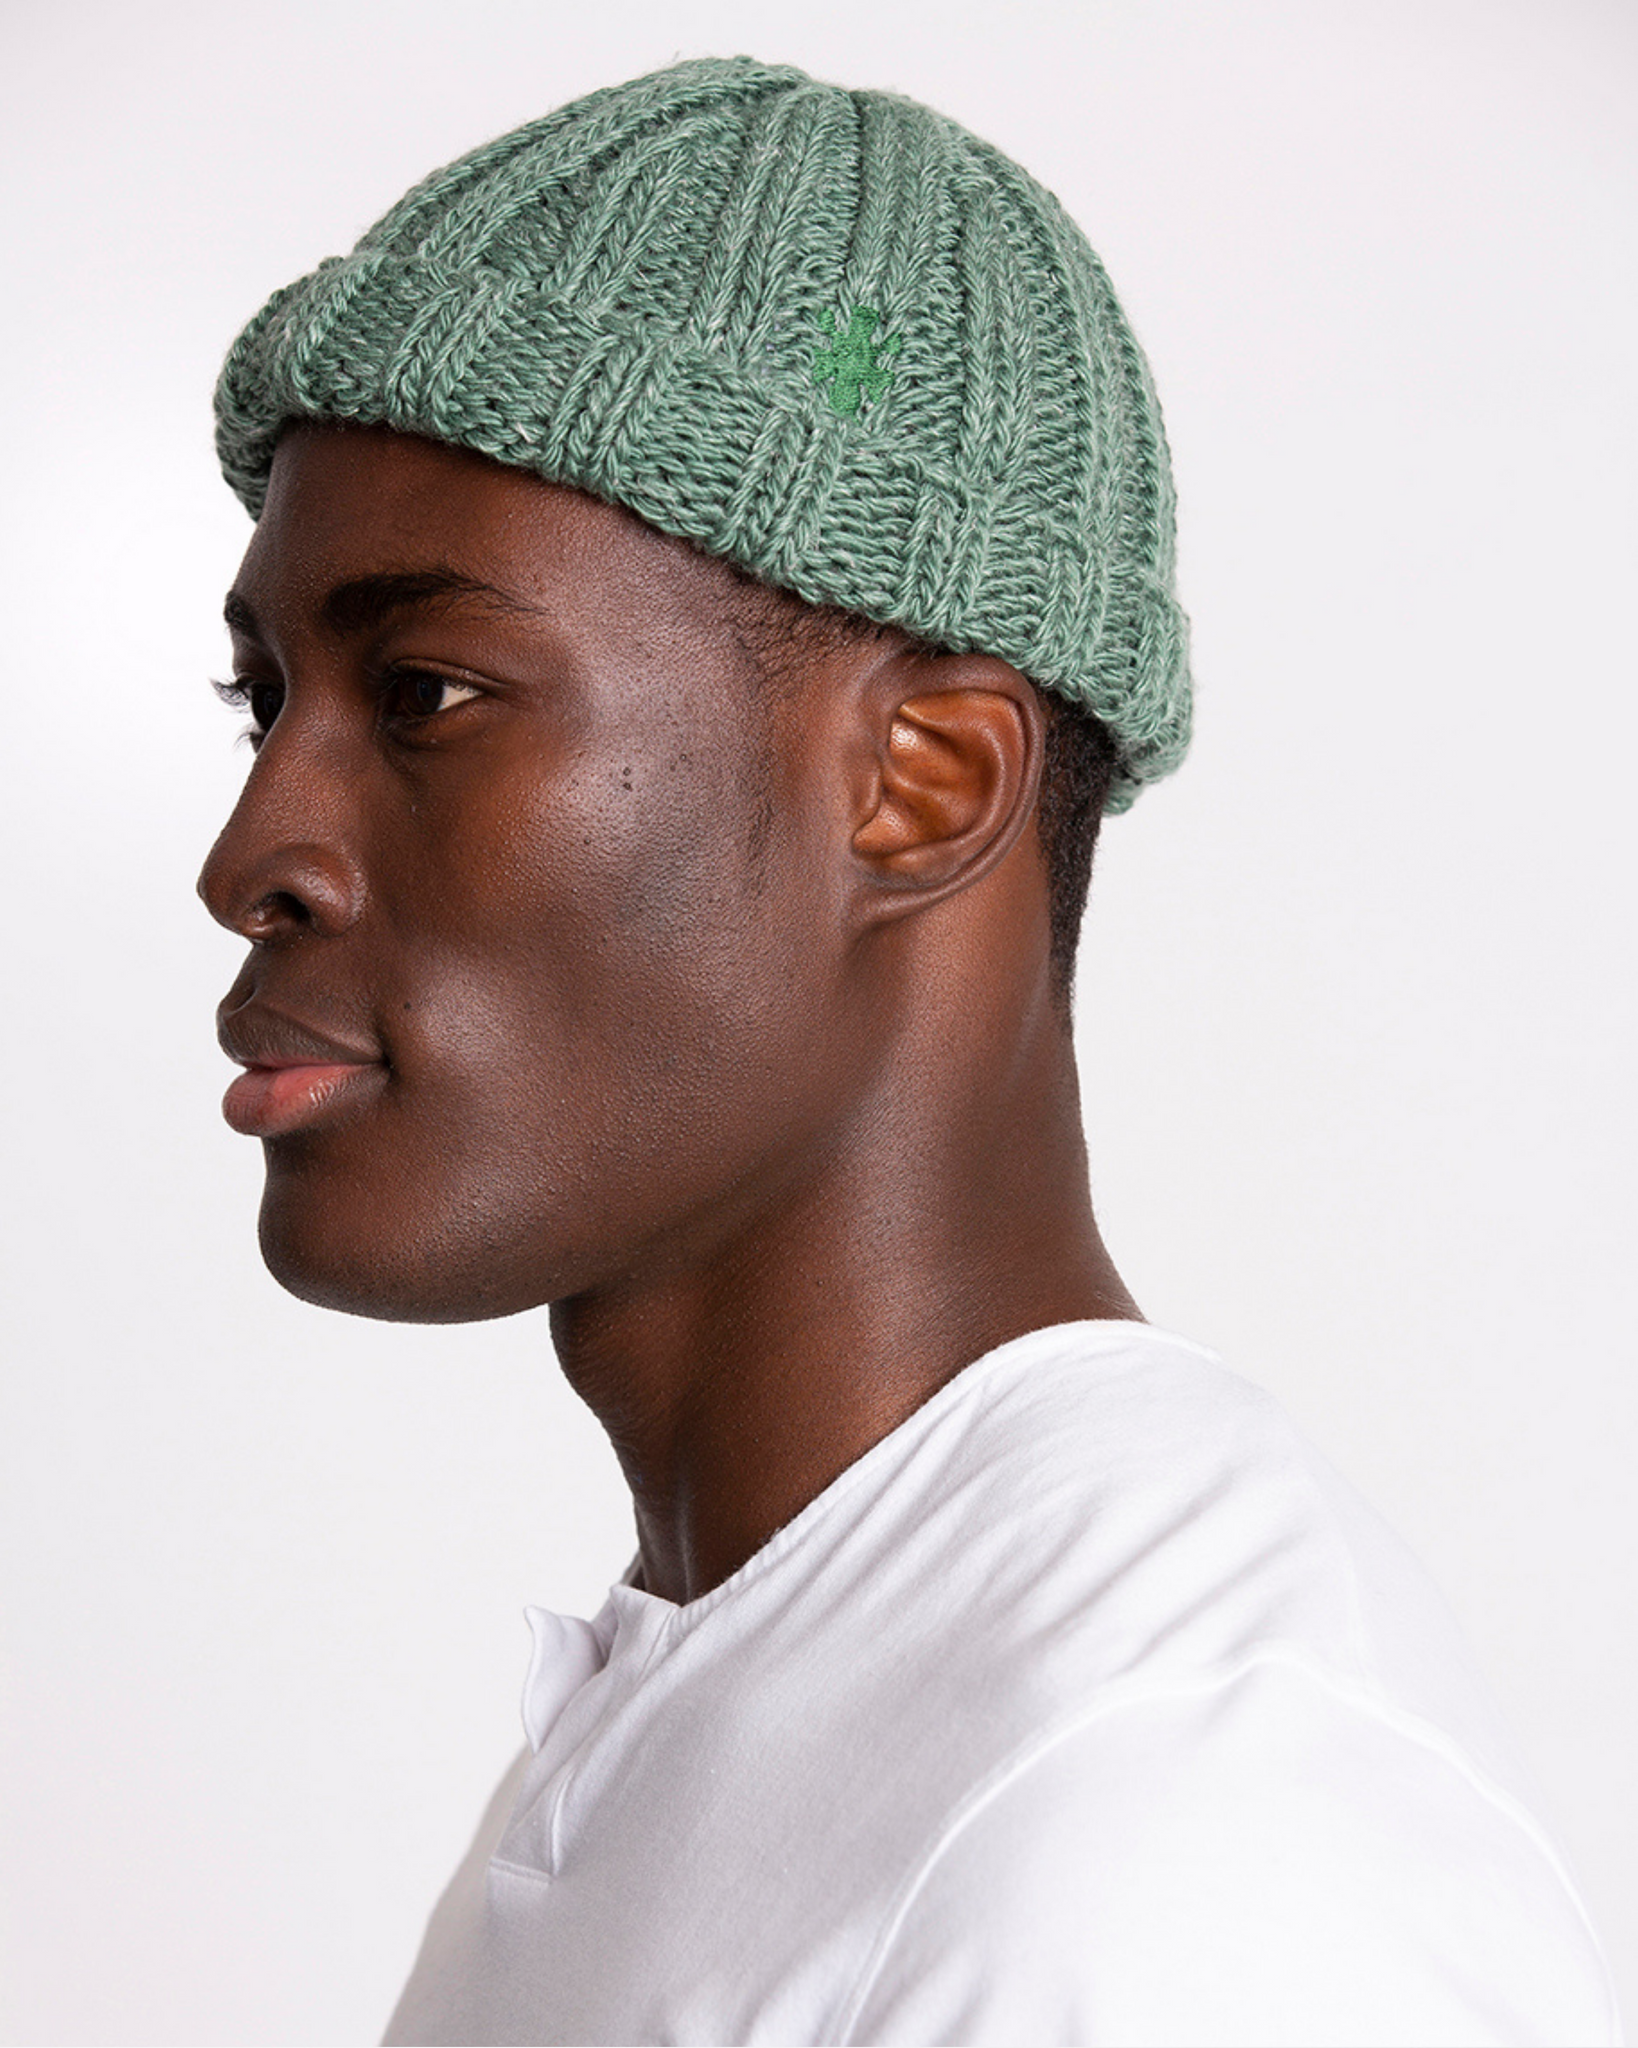 The Wool and Linen Beanie in Myrtle Green